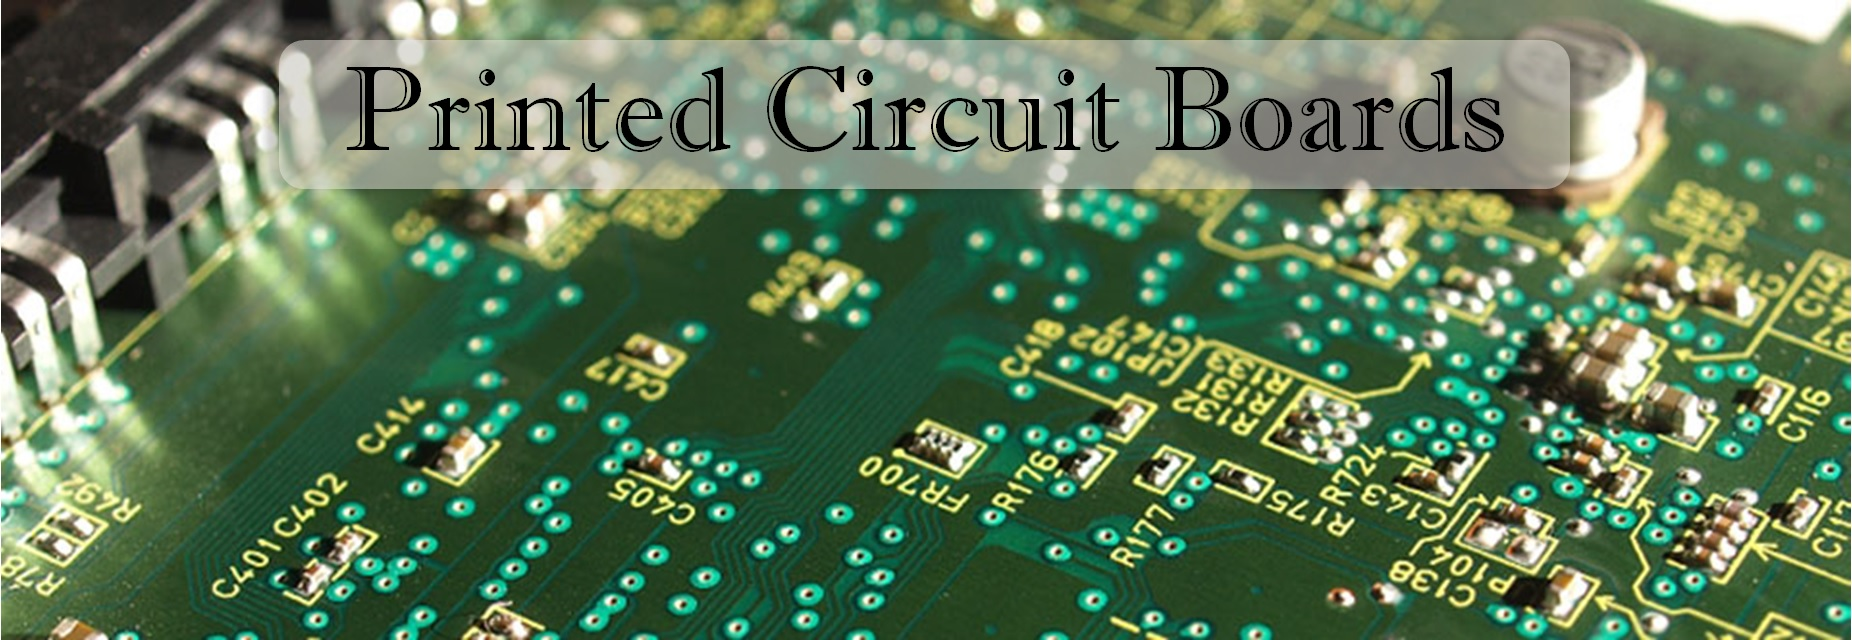 Asian pcb manufacturers